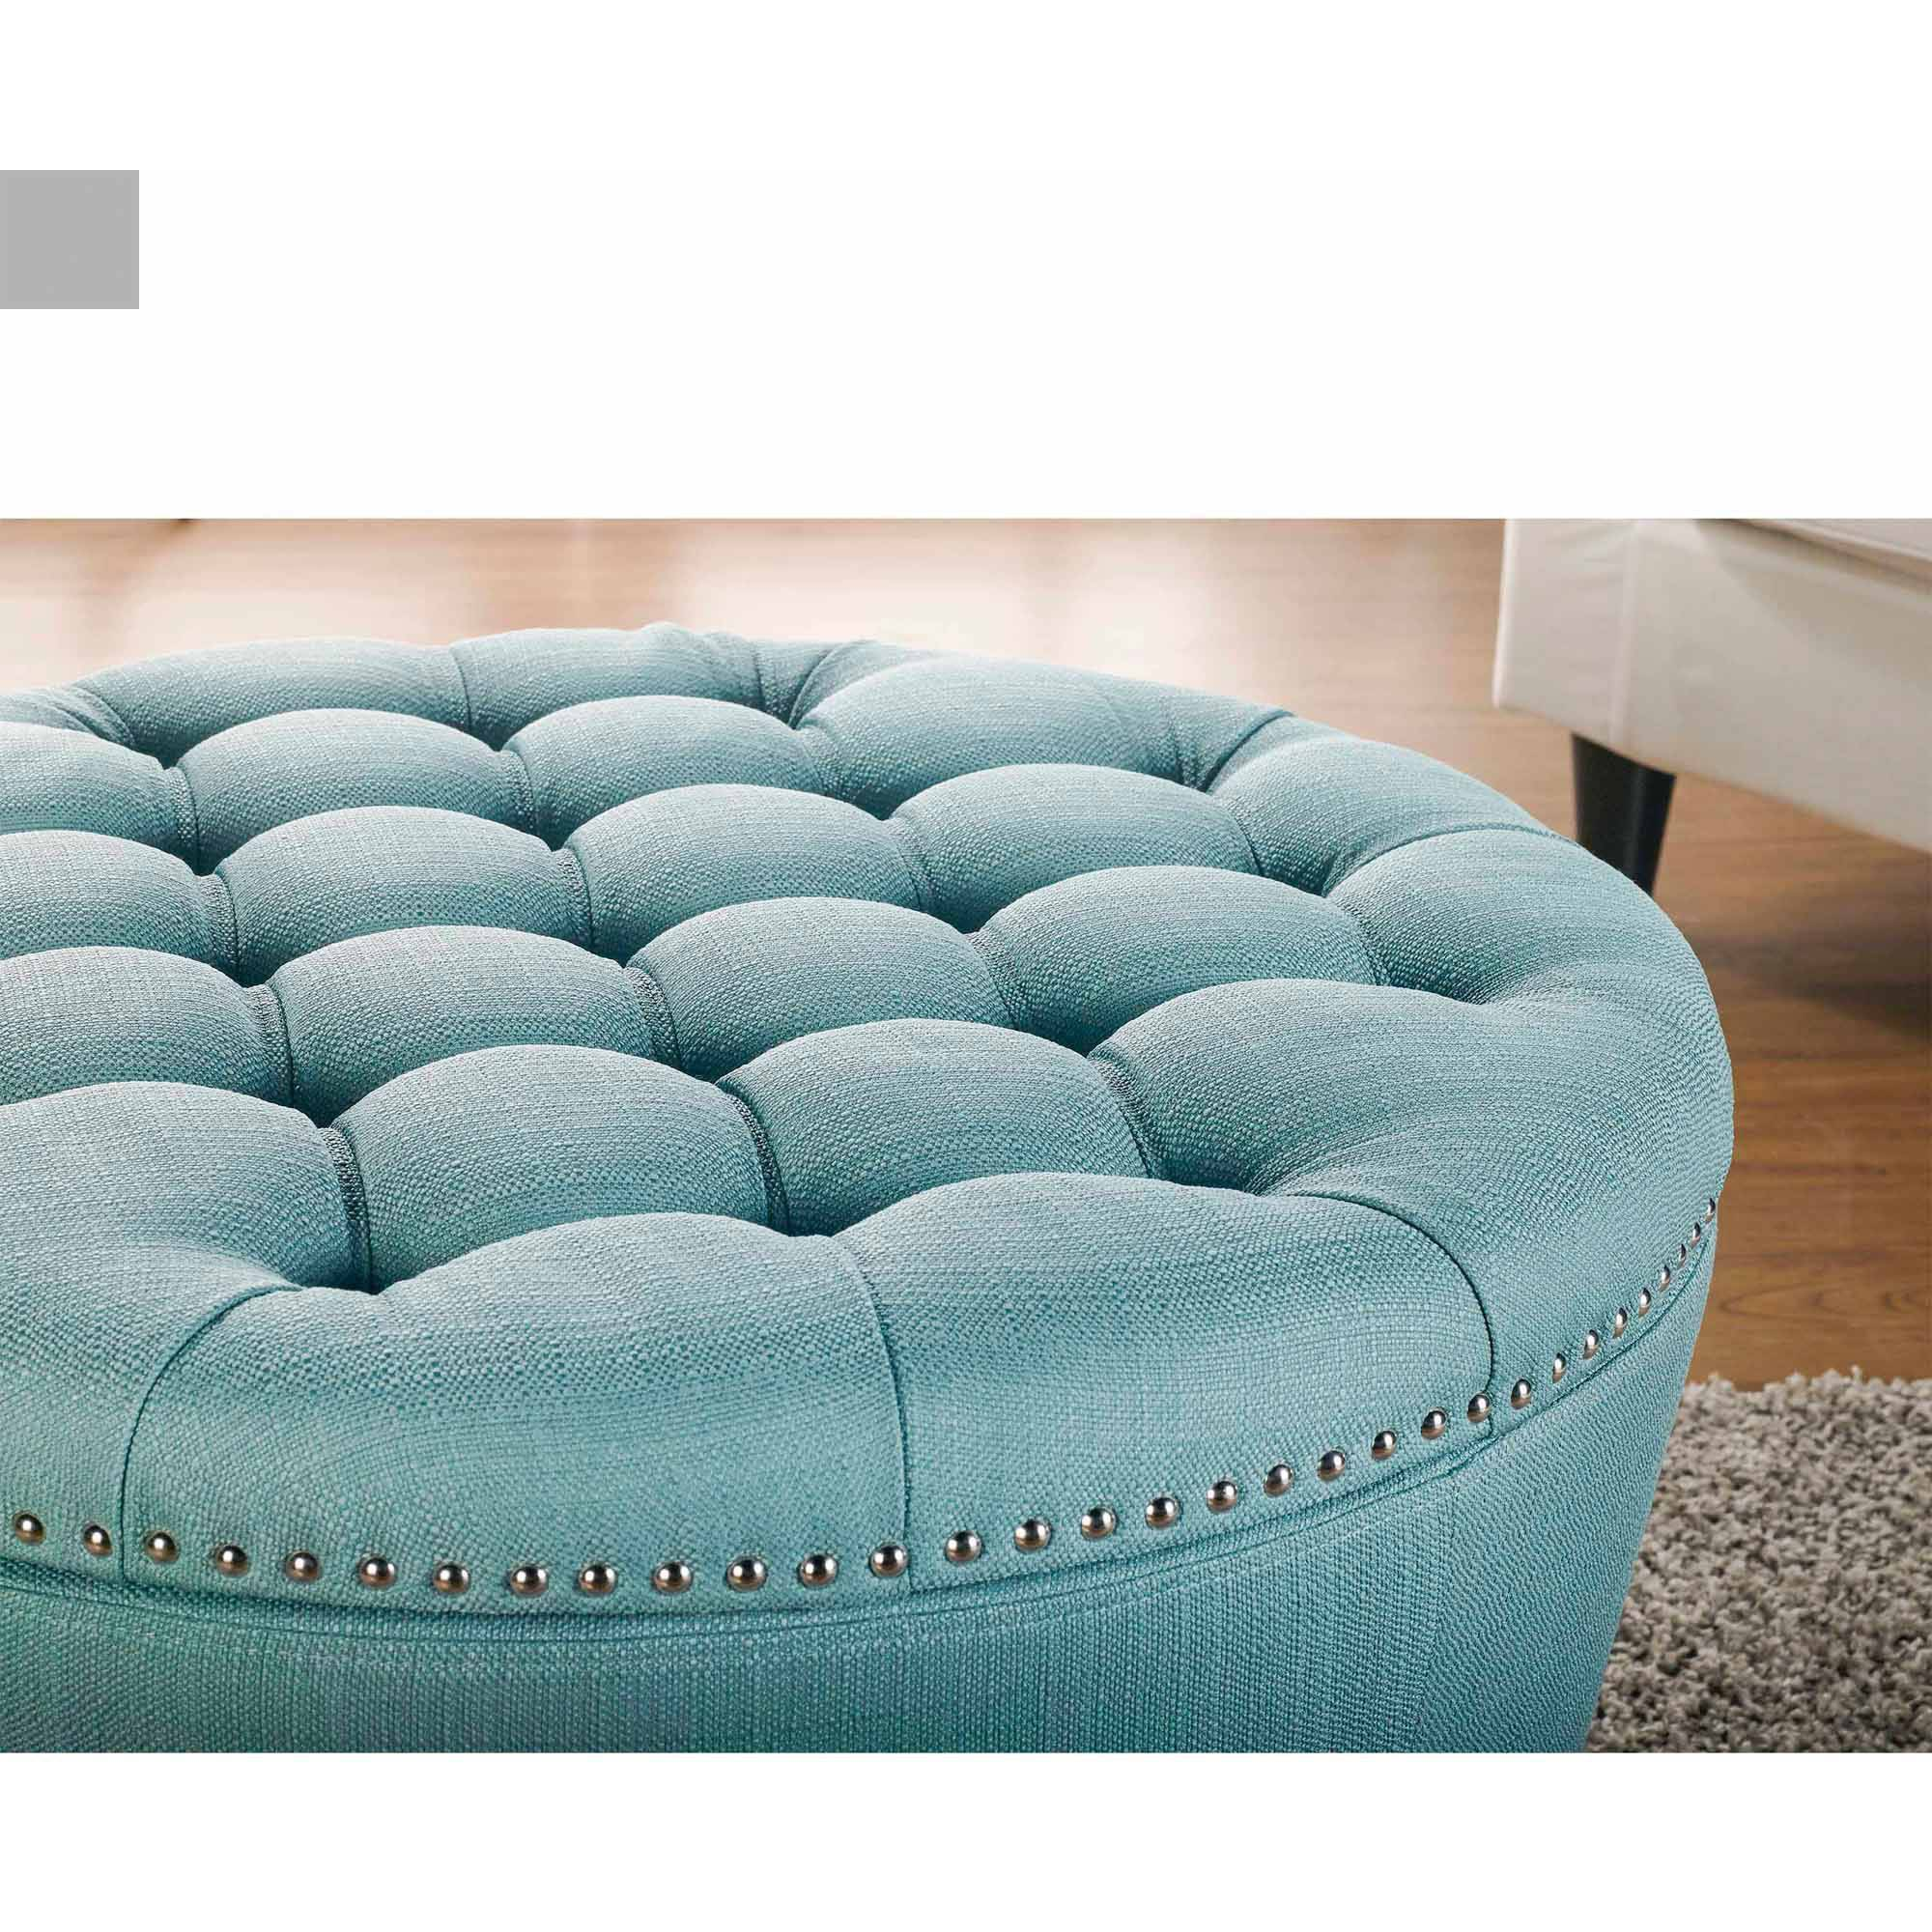 Furniture Round Tufted Ottoman With StorageRound Storage